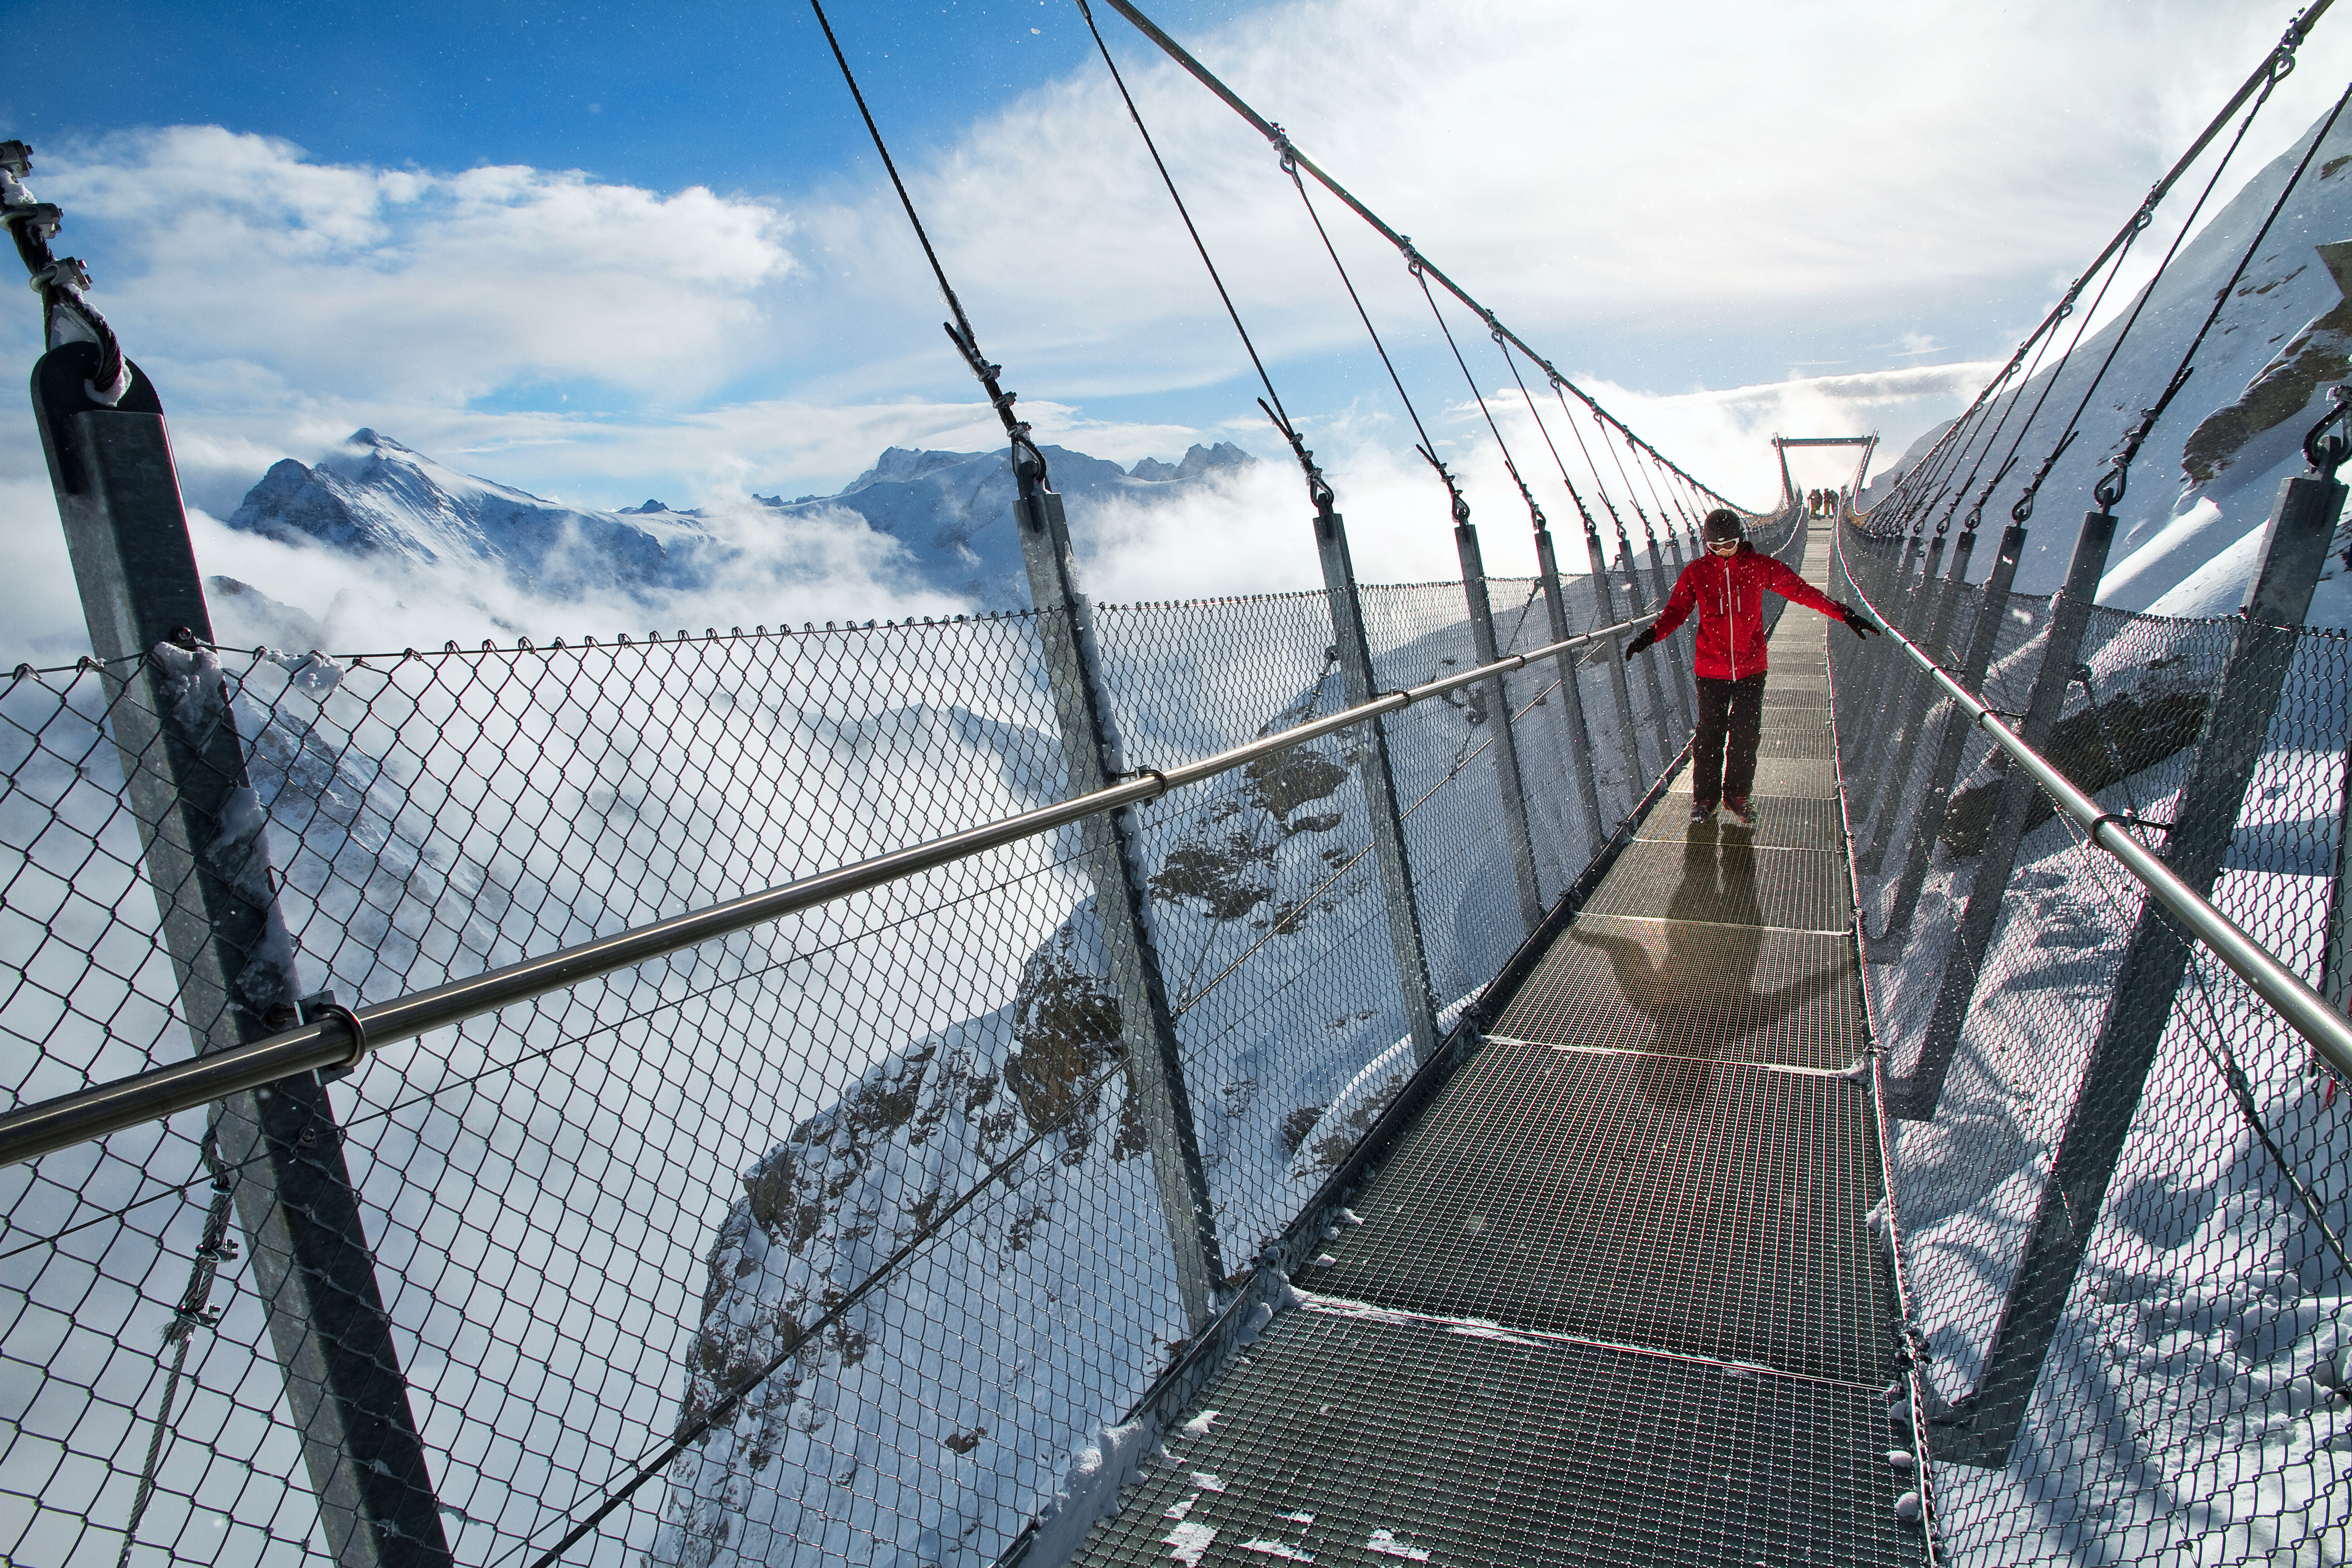 Suspension Bridges in Switzerland